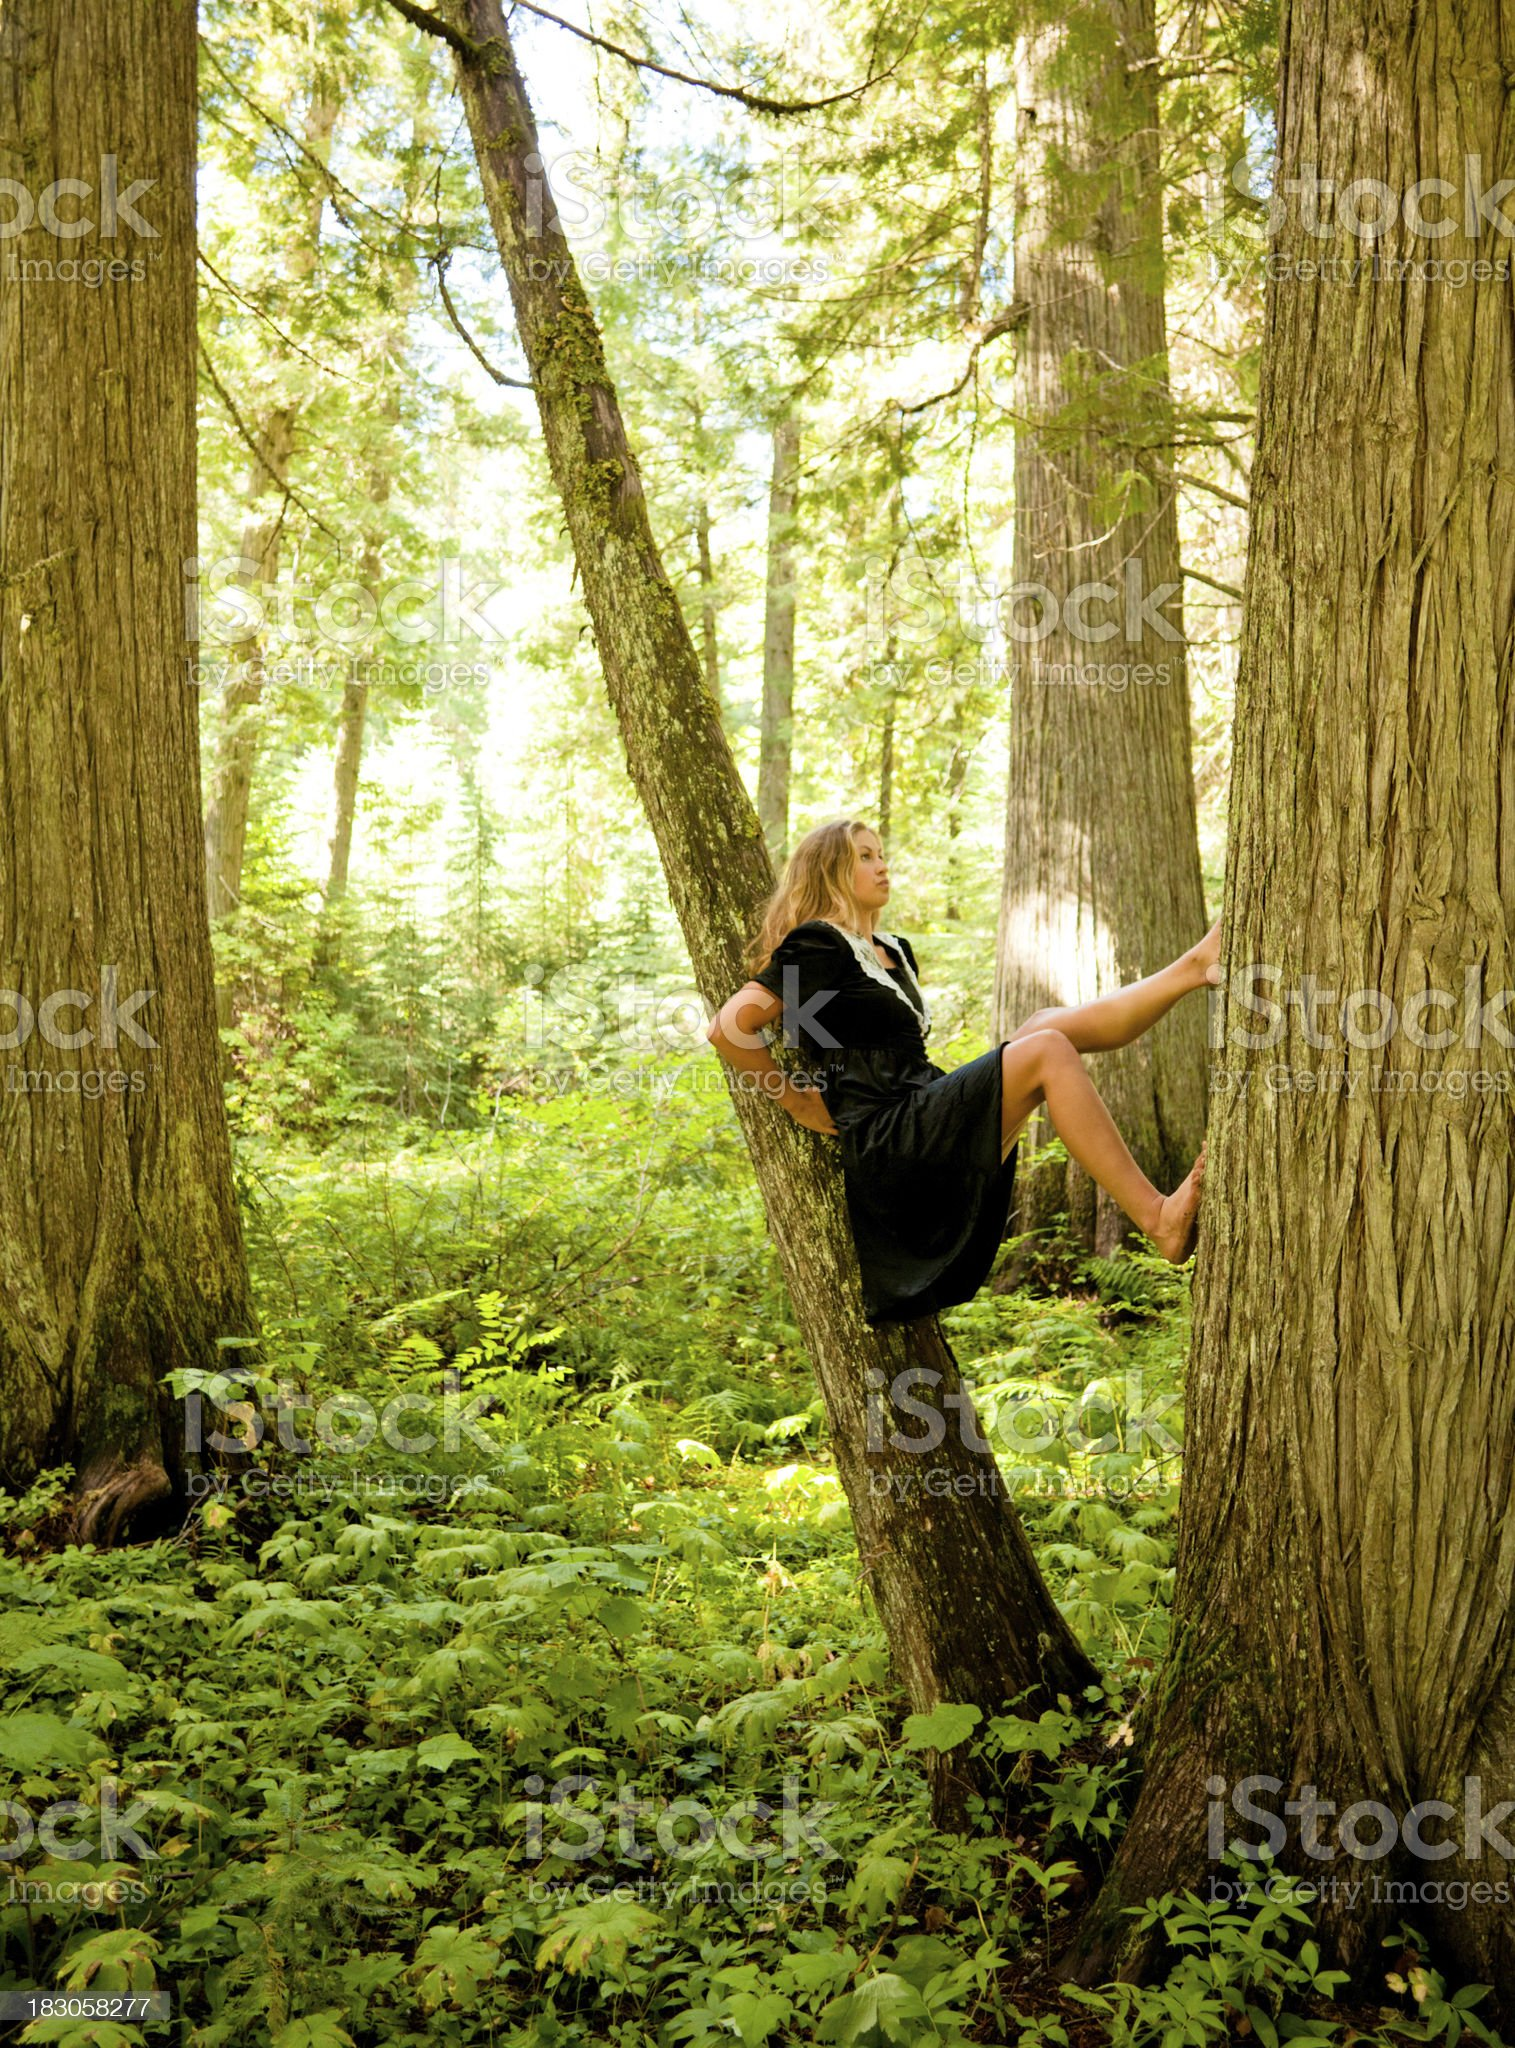 https://media.istockphoto.com/photos/beautiful-young-woman-stretching-in-a-tree-picture-id183058277?s=2048x2048